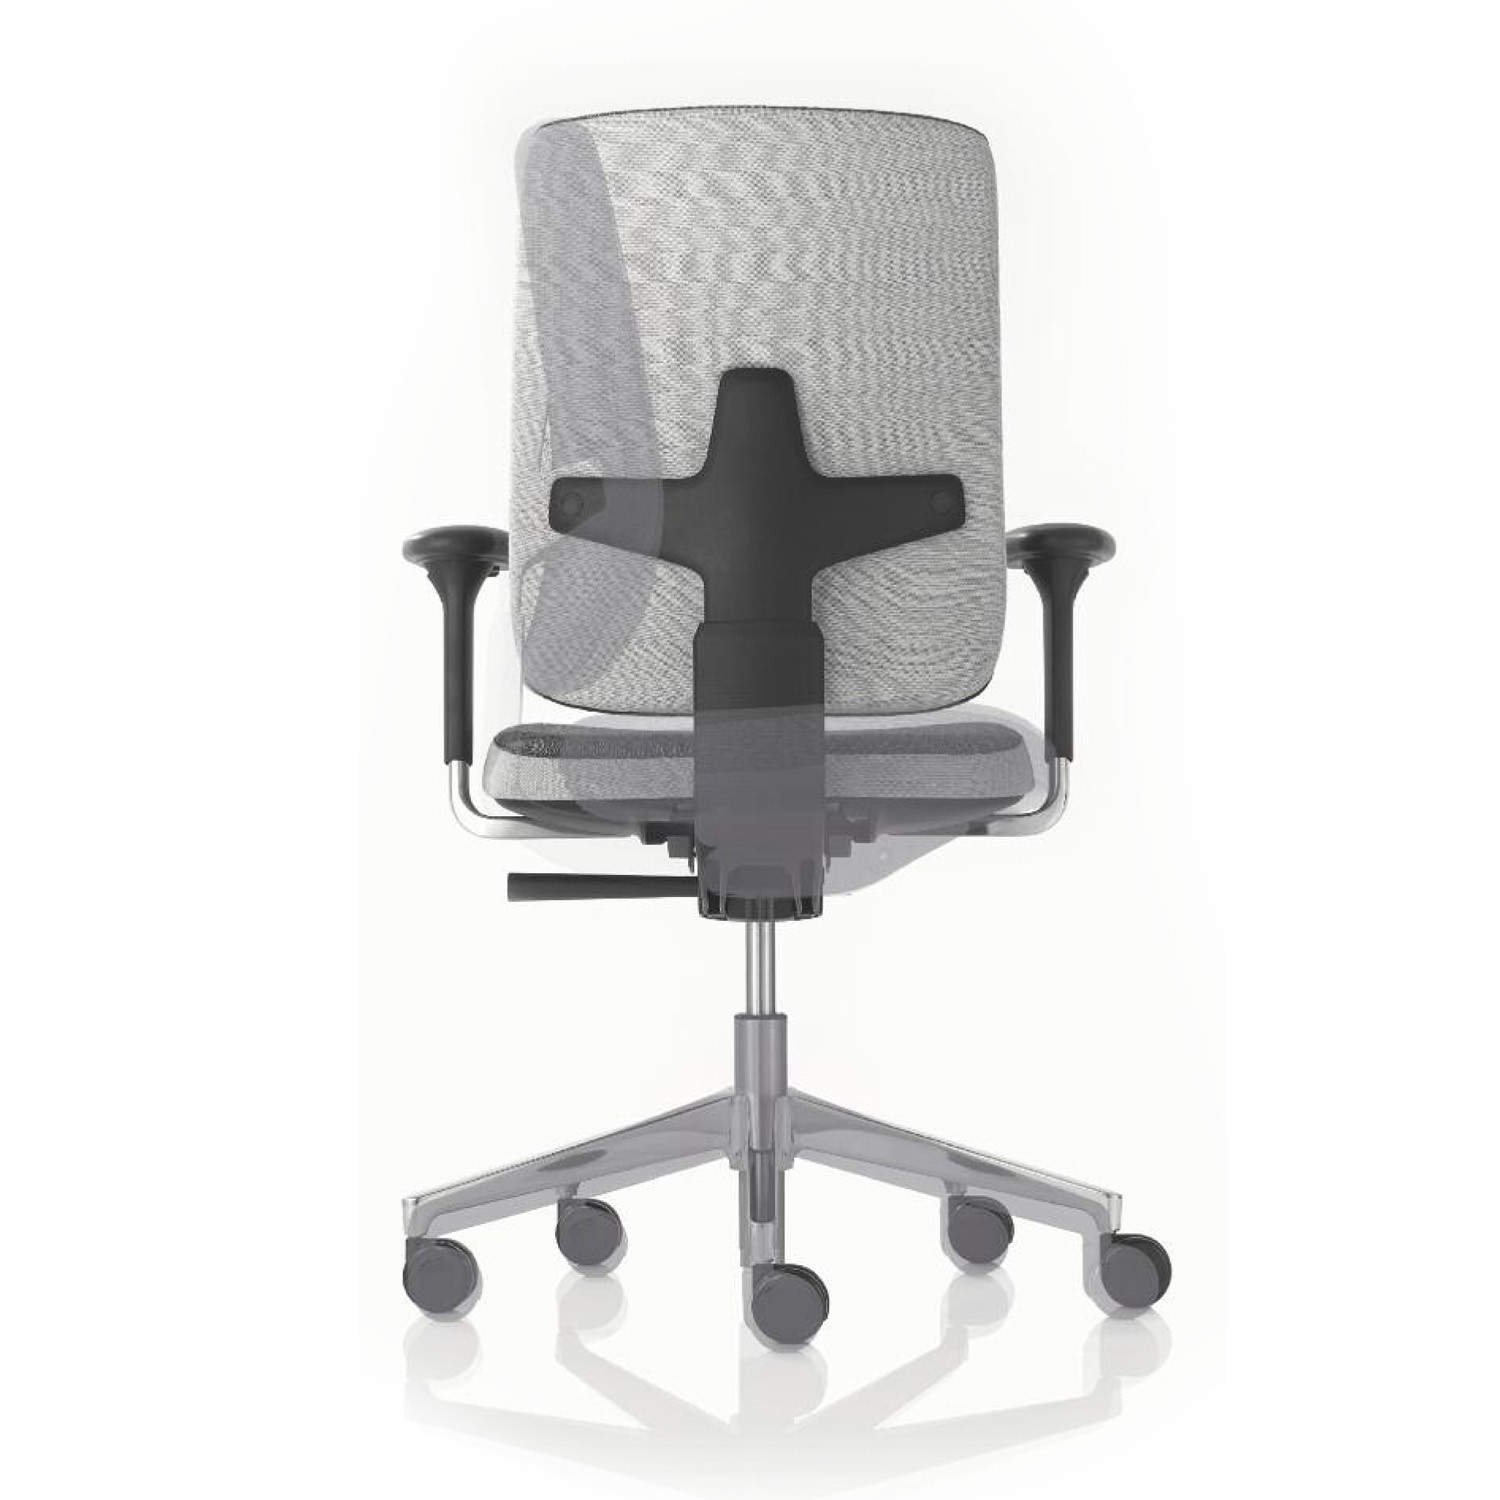 Orangebox Seren H-B Office Chair